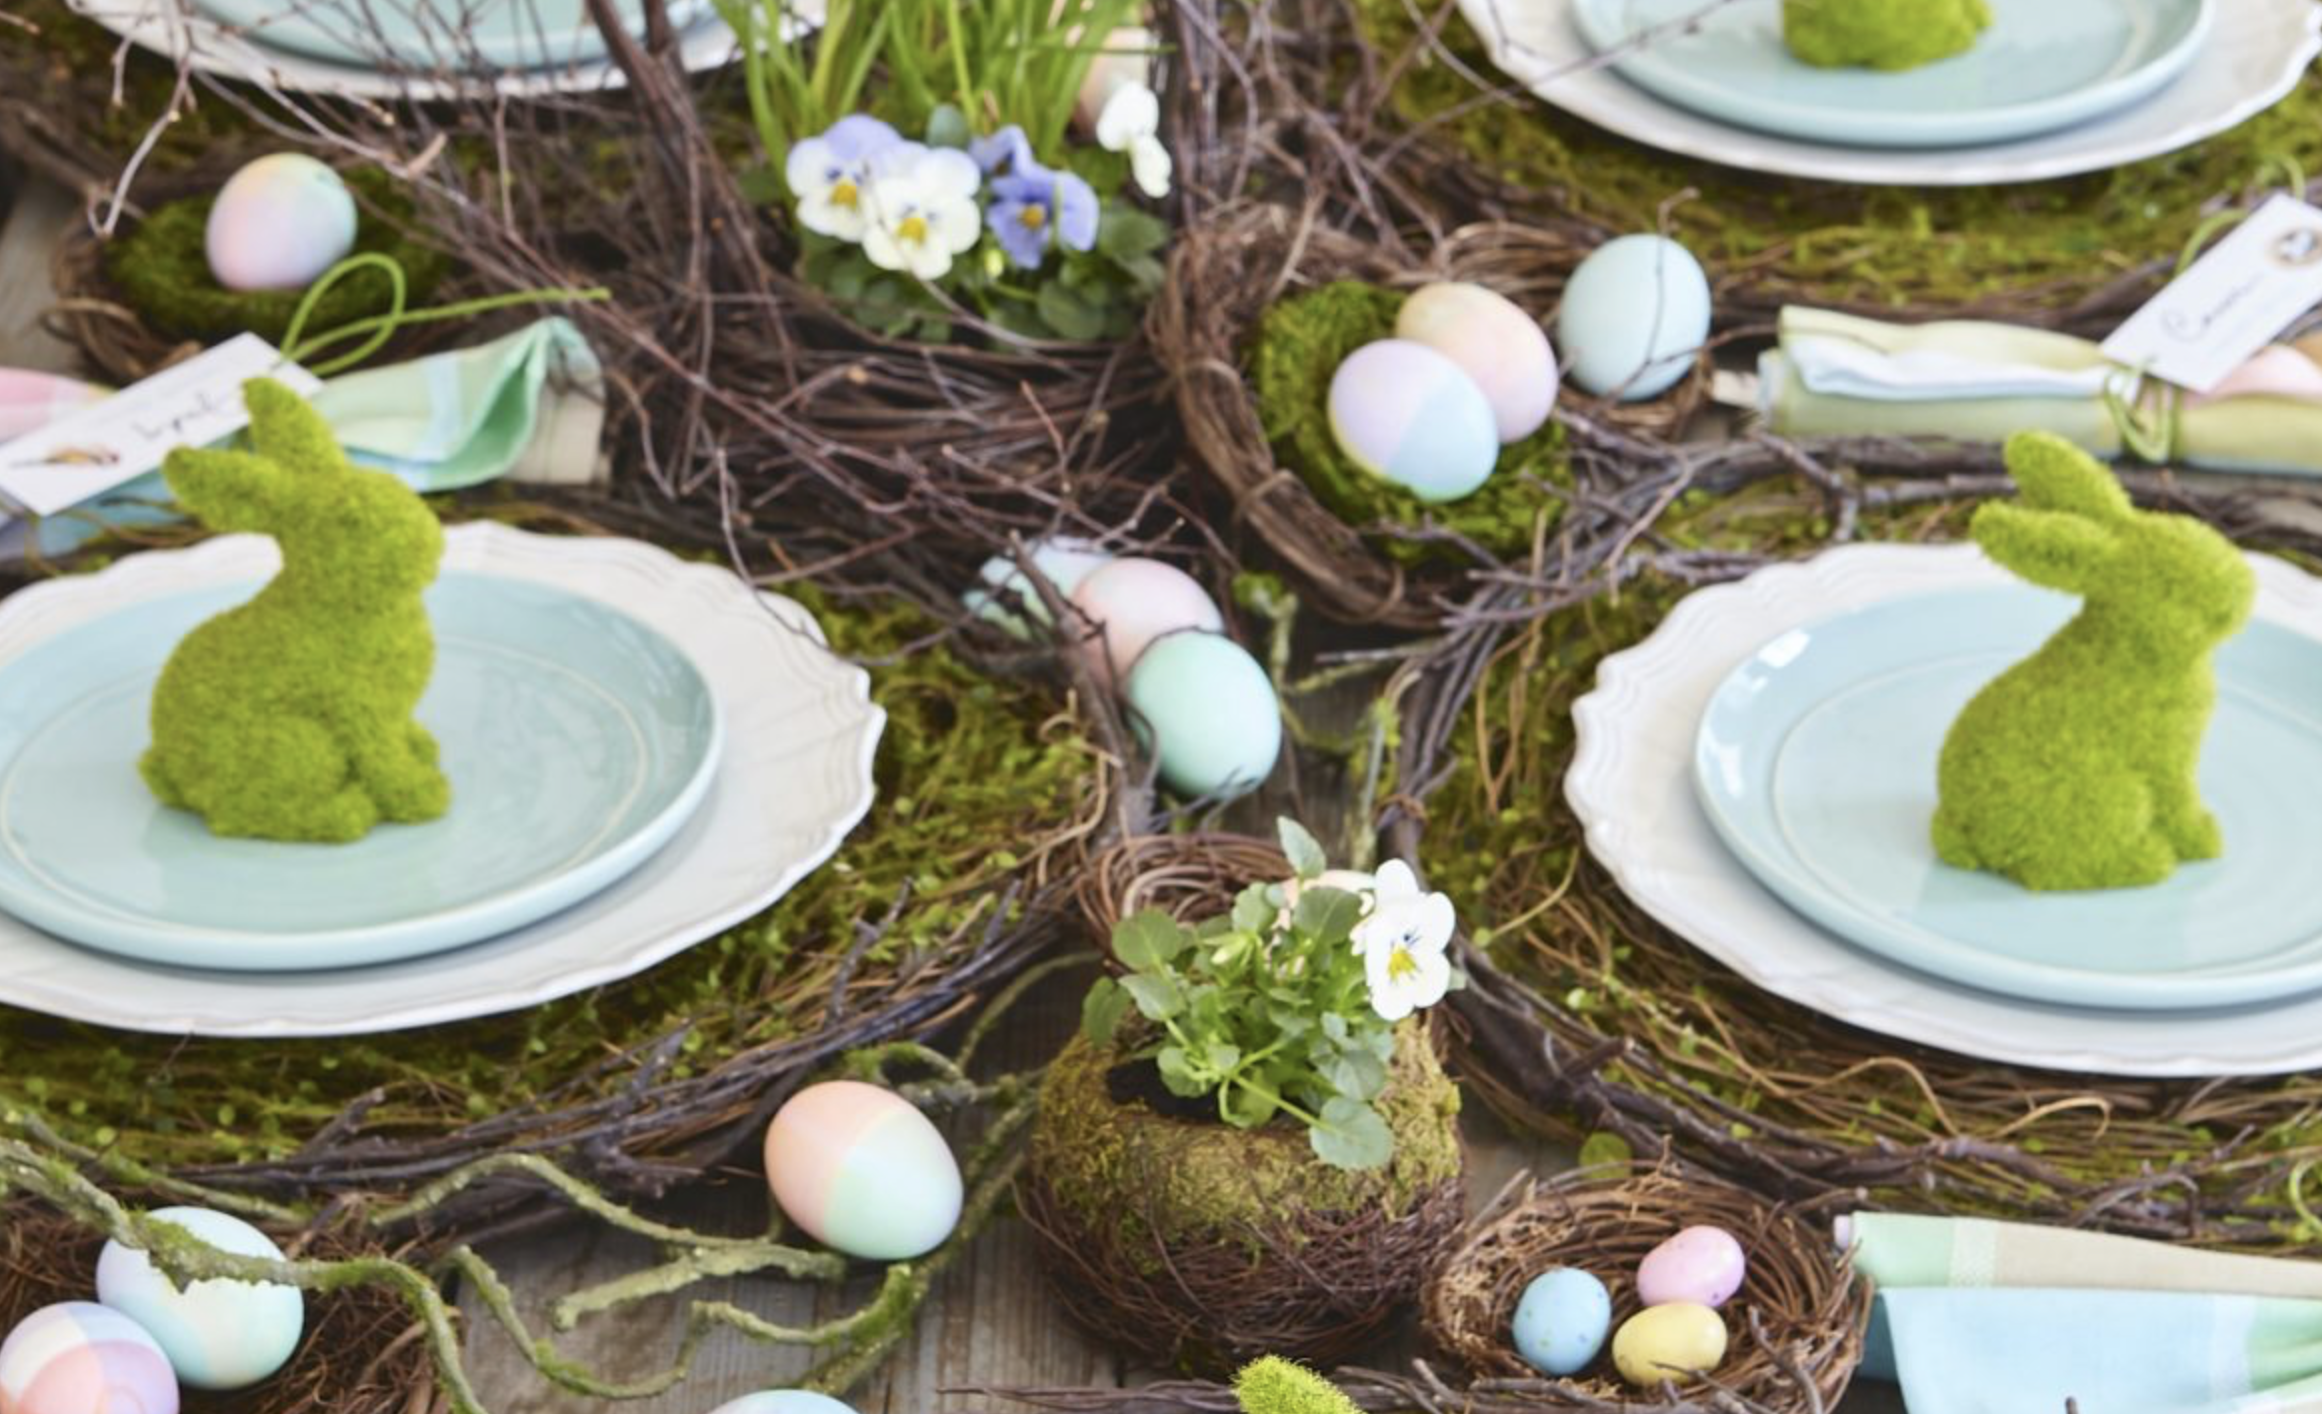 twig and moss bunny Easter table setting.png